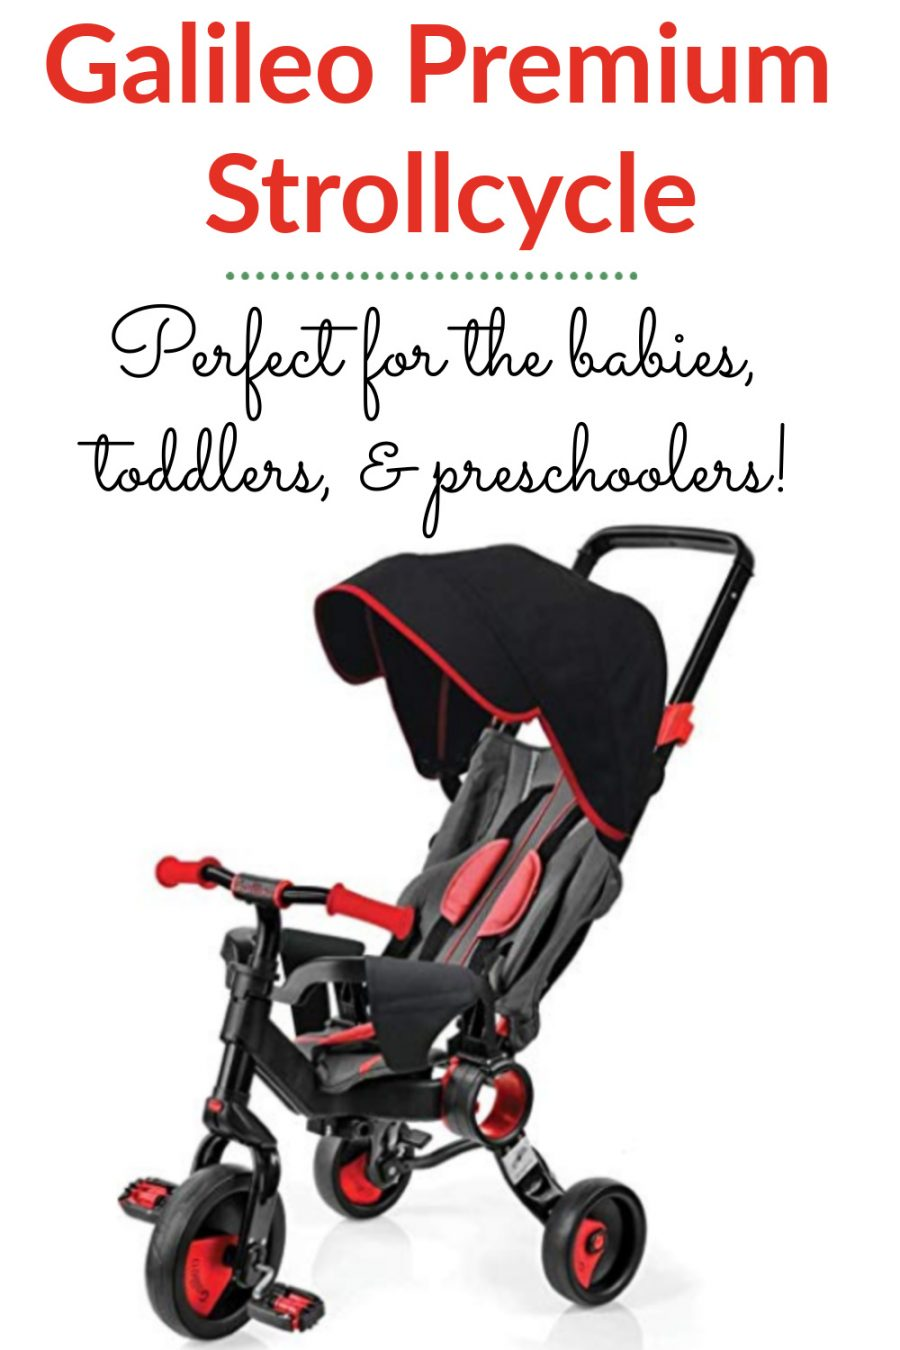 Galileo Premium Strollcycle